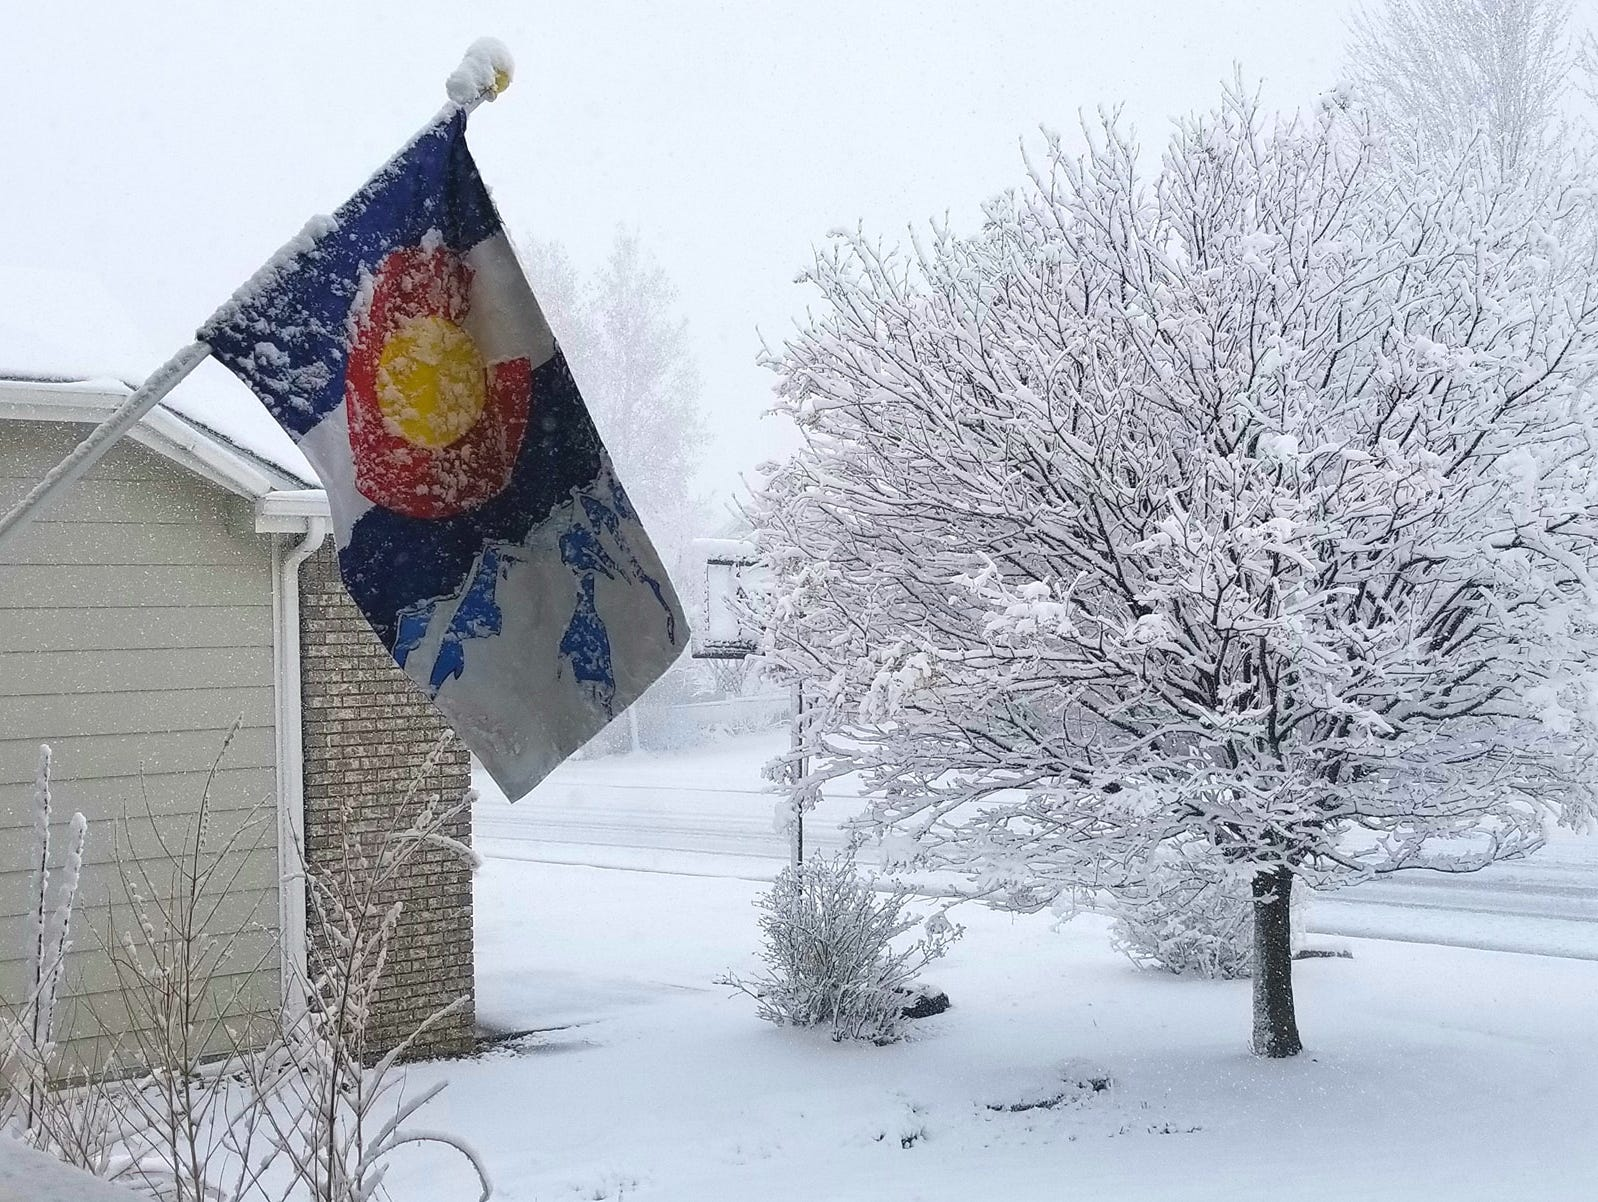 Scenes from the April 10, 2019 snowstorm in Fort Collins and Northern Colorado